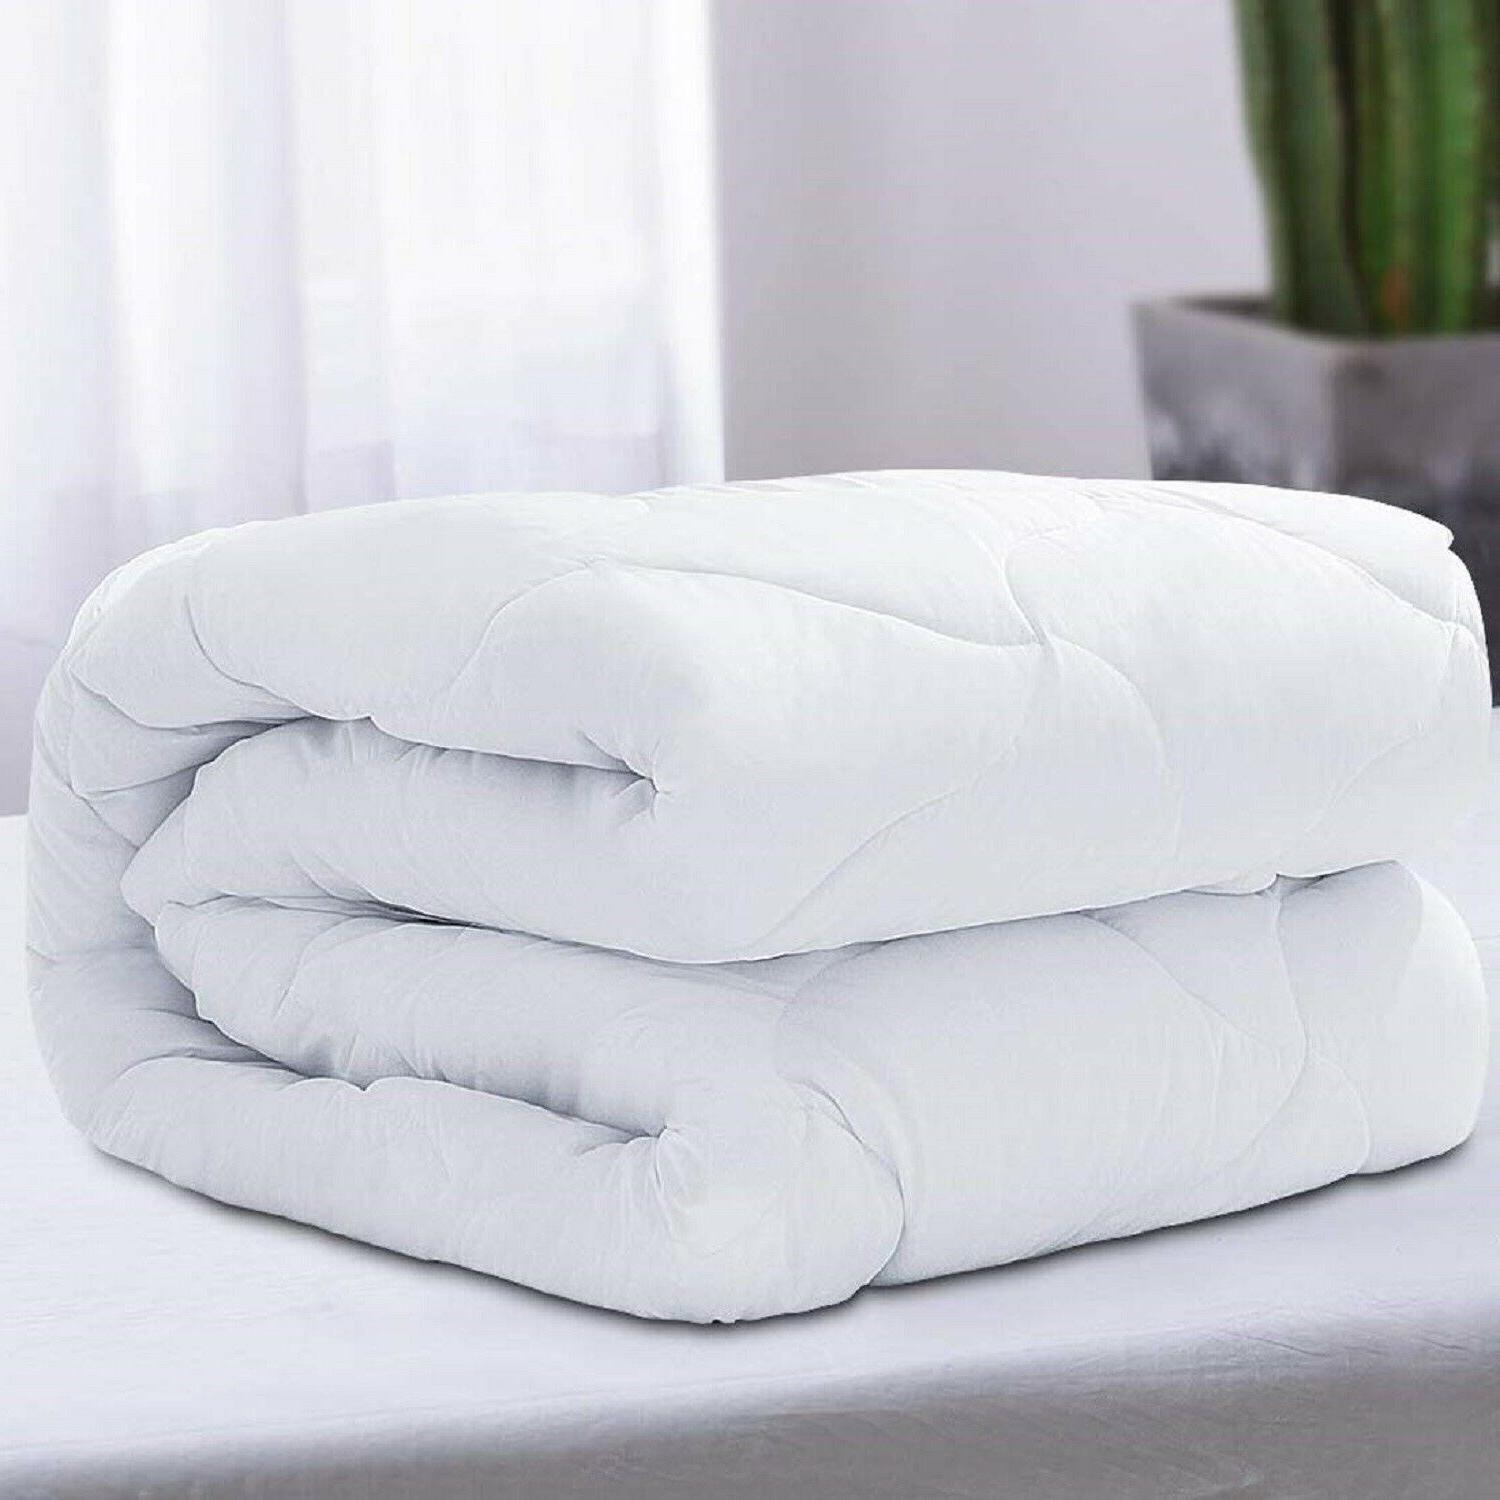 QUEEN TOPPER Luxury Bed Pad Cover